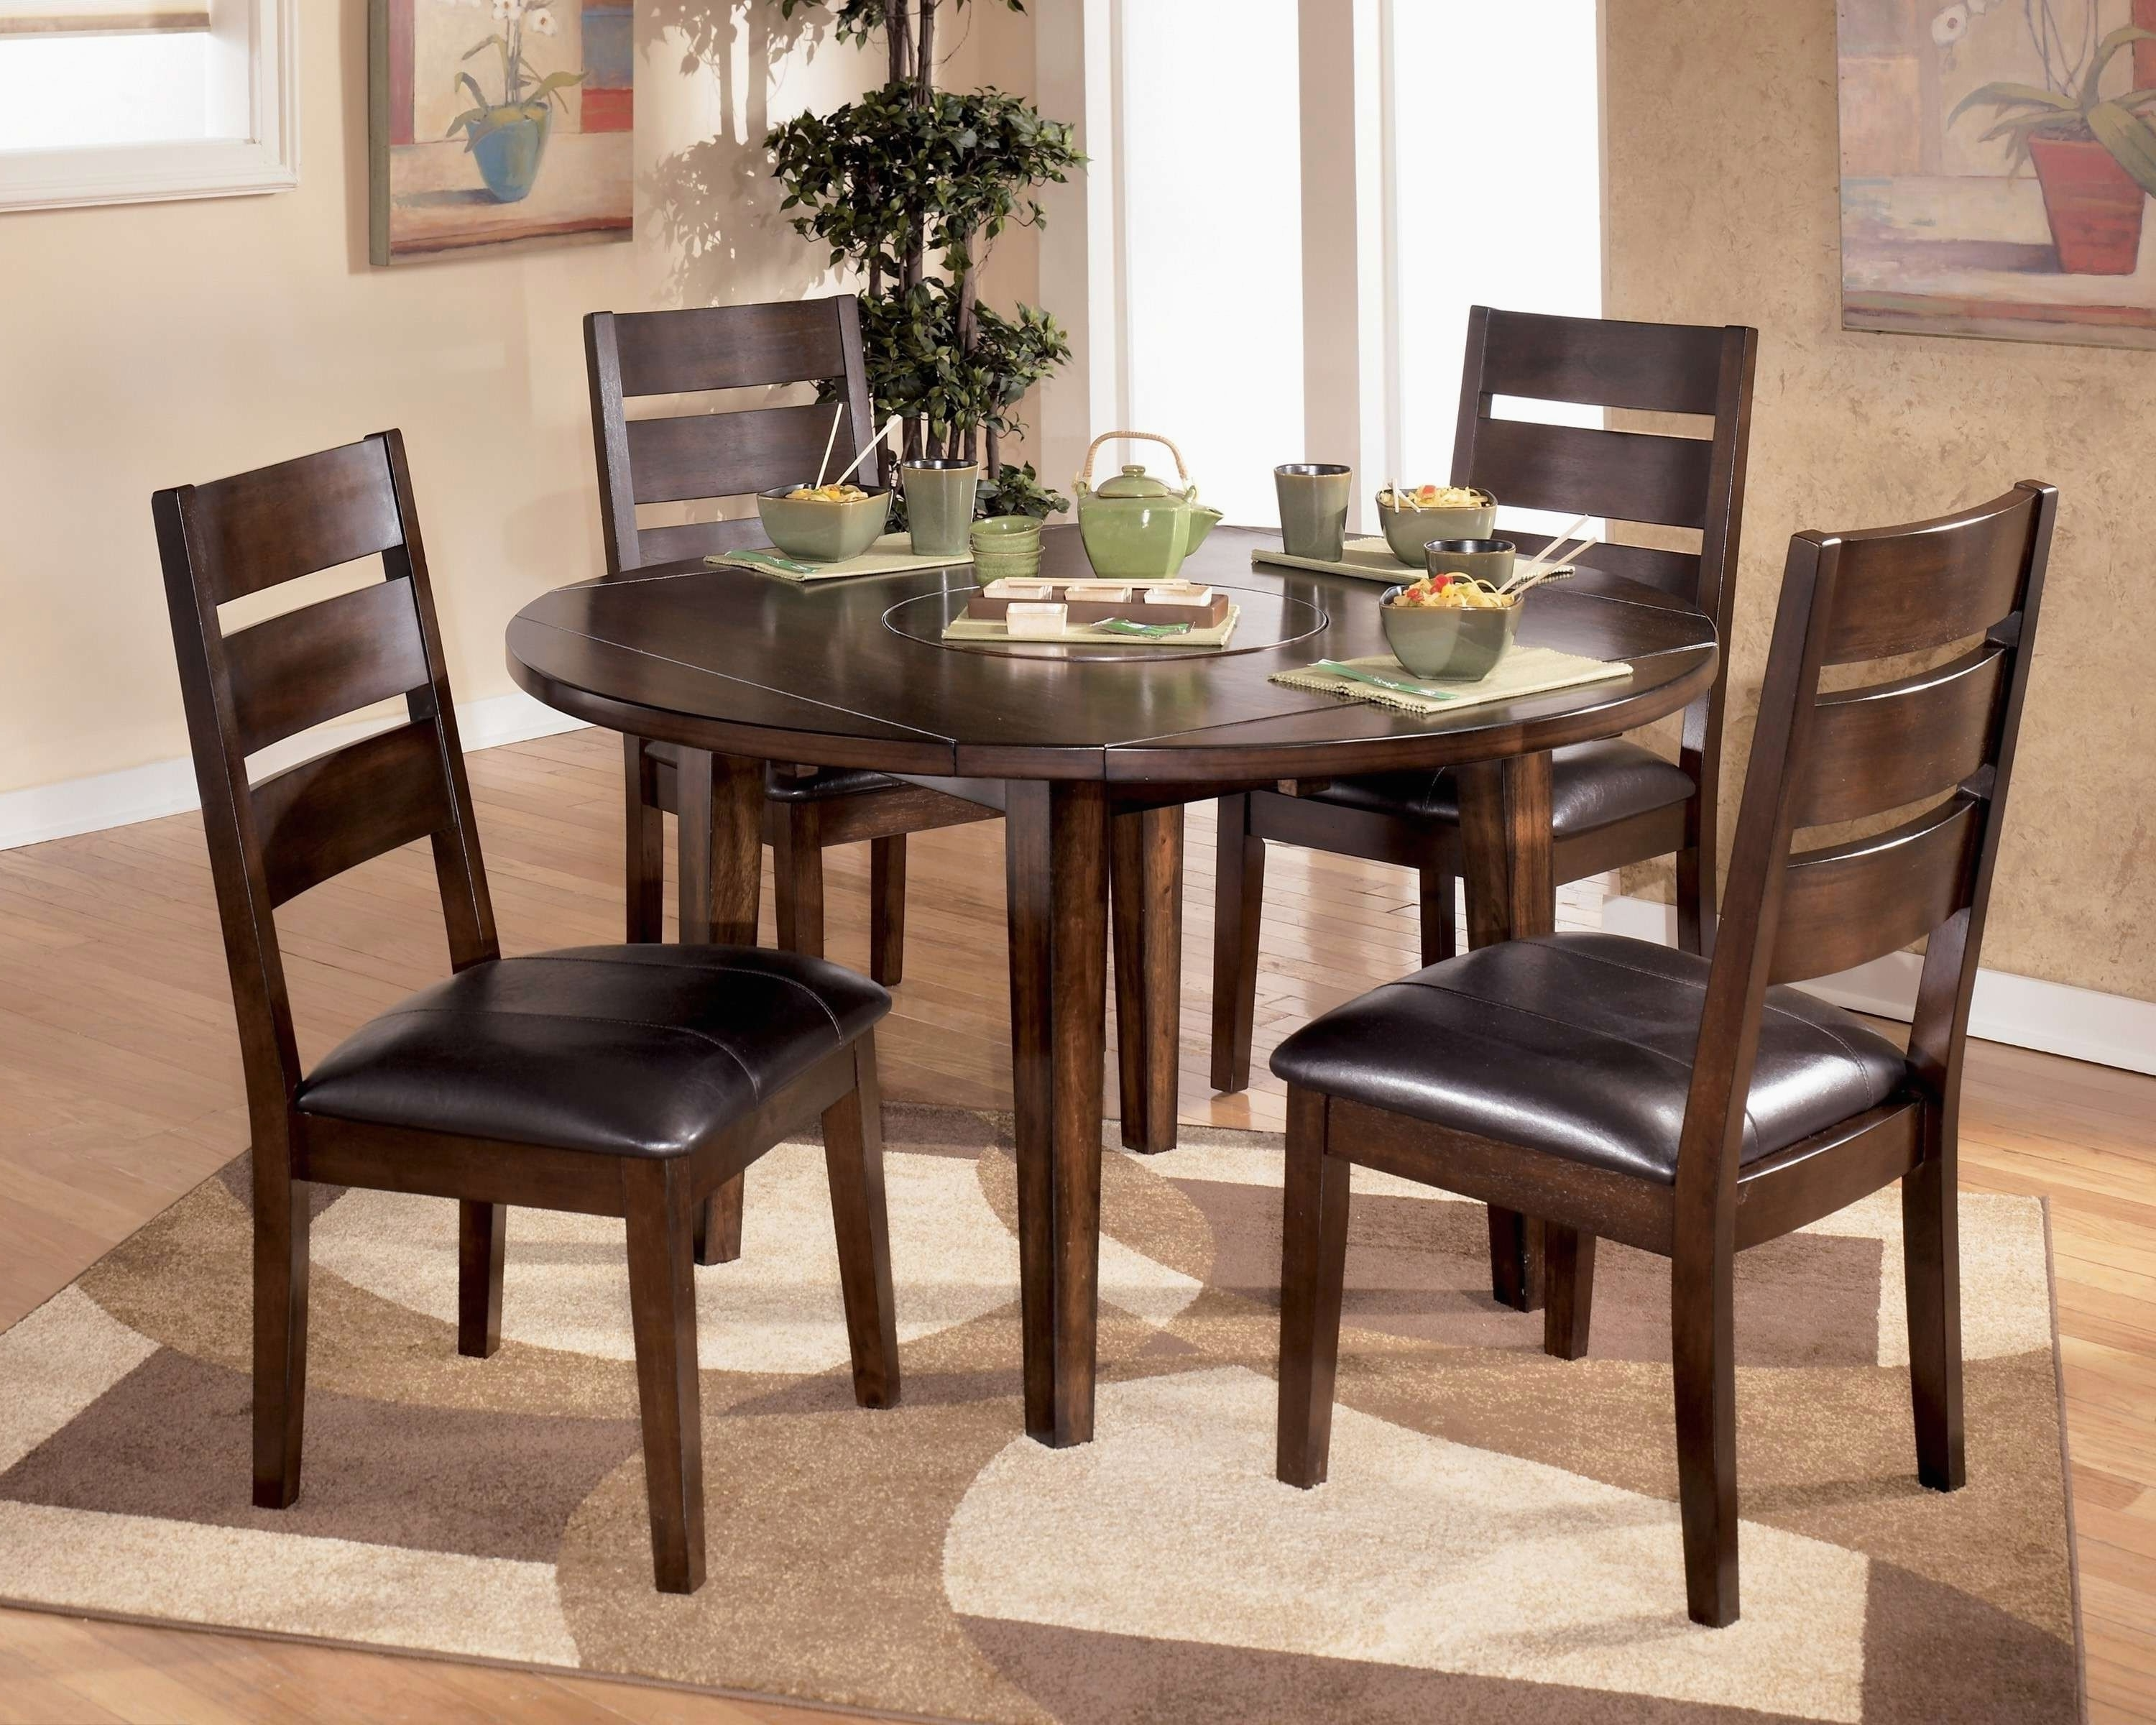 Decorative Oriental Dining Room Set In 6 Chair Round Dining Table Regarding Most Popular Asian Dining Tables (Gallery 7 of 25)